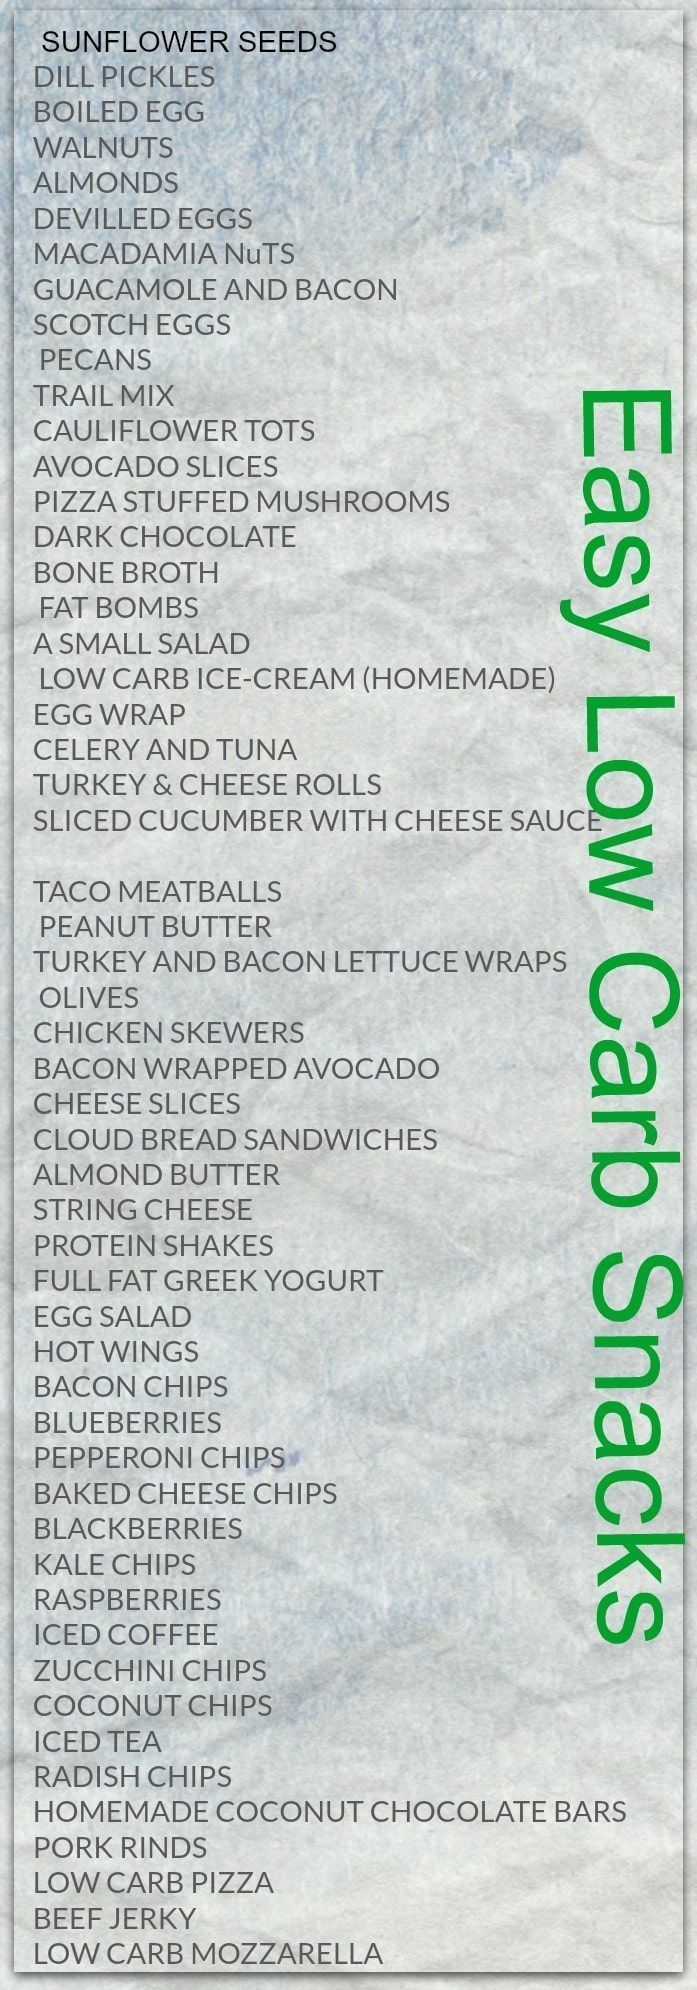 Easy low carb snacks for better health - lchf, keto, paleo. #carbswitch Please Repin